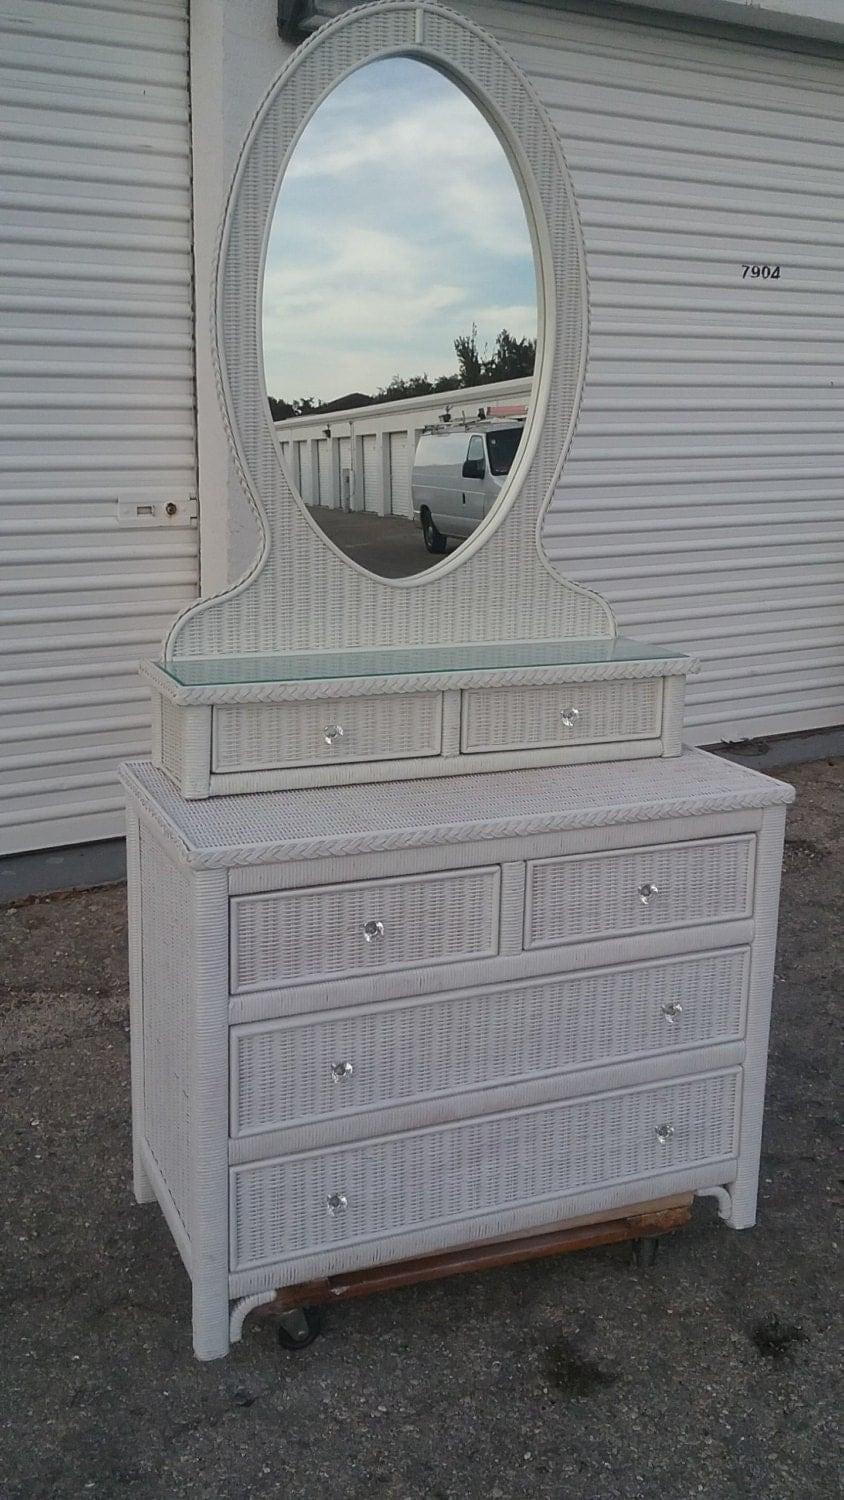 Lexington Wicker Henry Link Dresser And Mirror Set Shipping Not Included